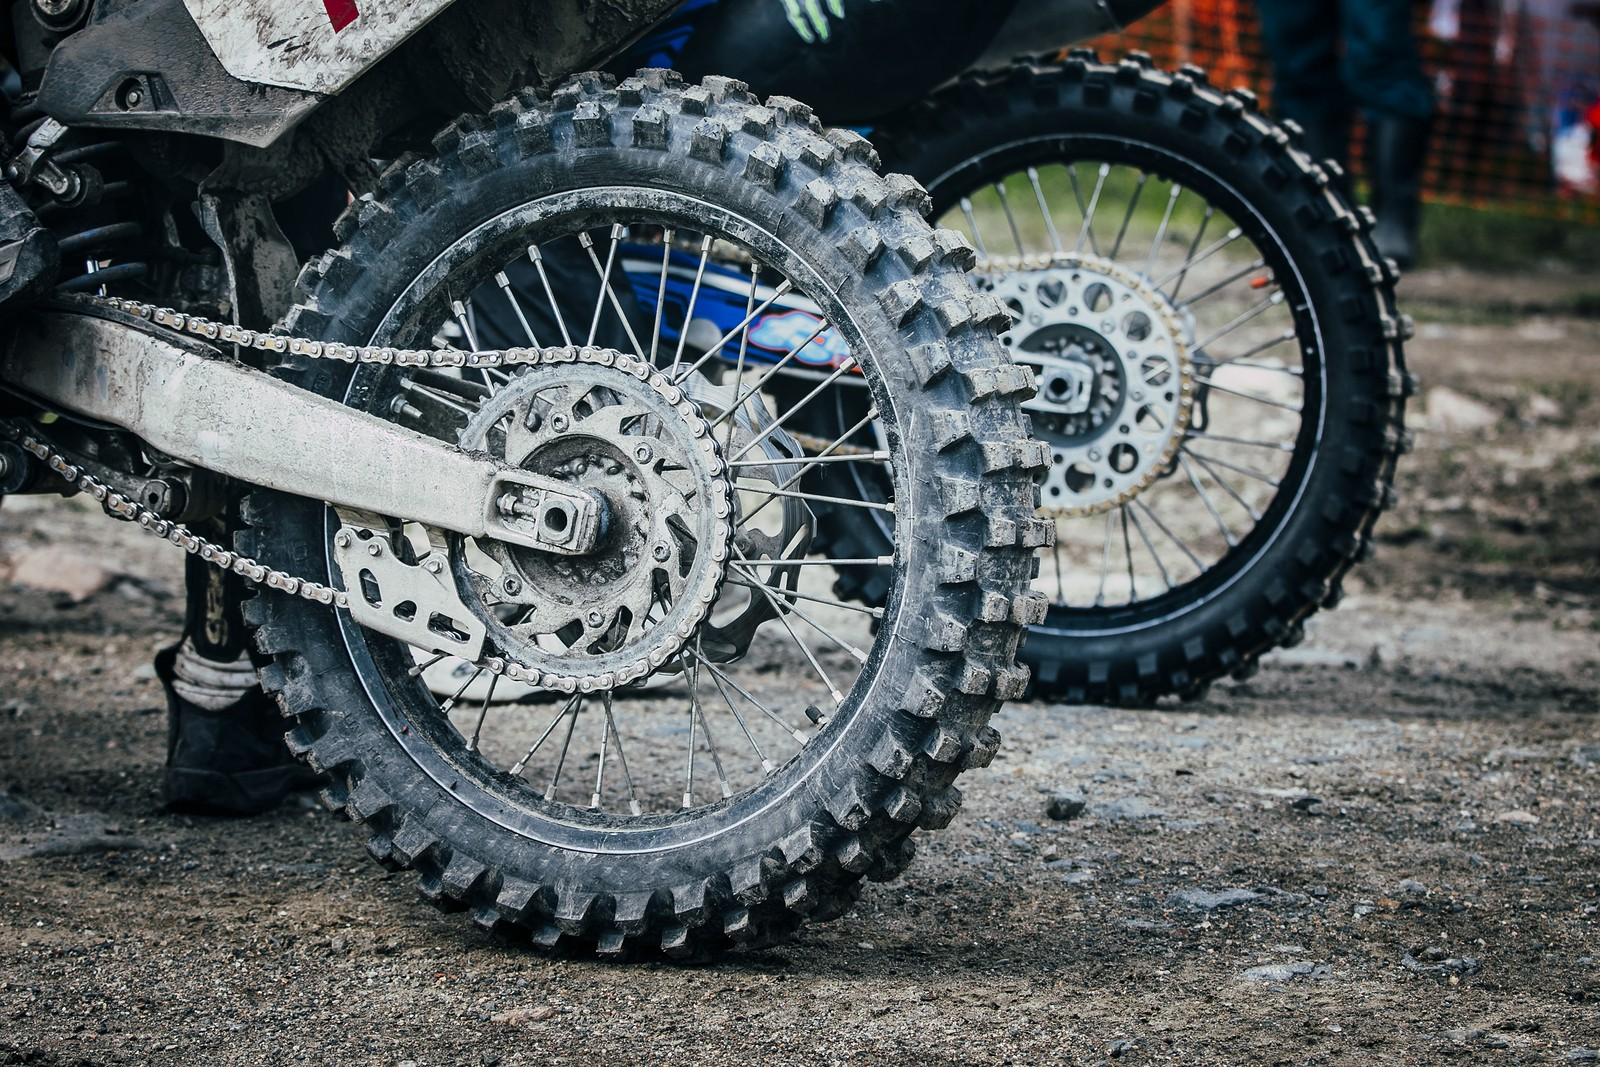 How To Decide On Gearing The Cause And Effect Of Front Rear Sprocket